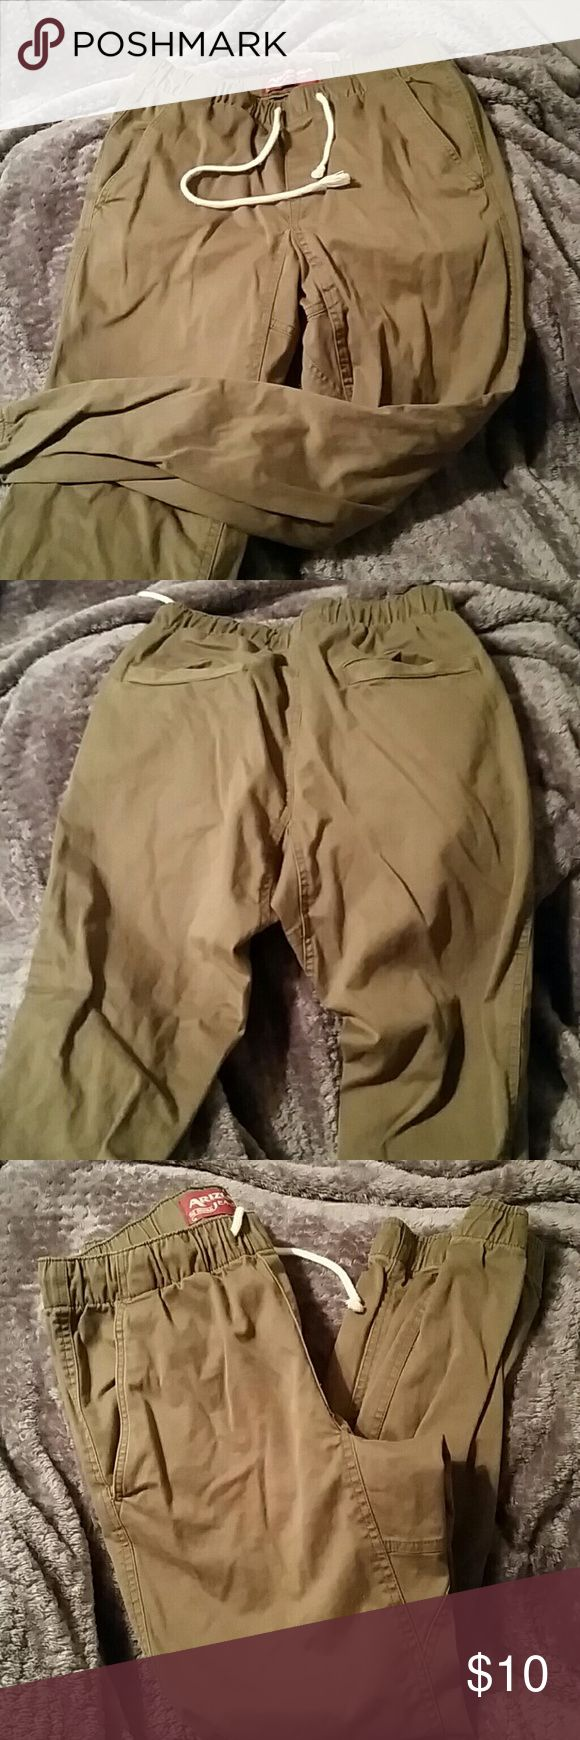 Arizona Jean Joggers AZ Joggers, Olive Green, no tears, rips or marks. Has a lot of life left in'em. 29 x 30 Arizona Jean Company Pants Sweatpants & Joggers